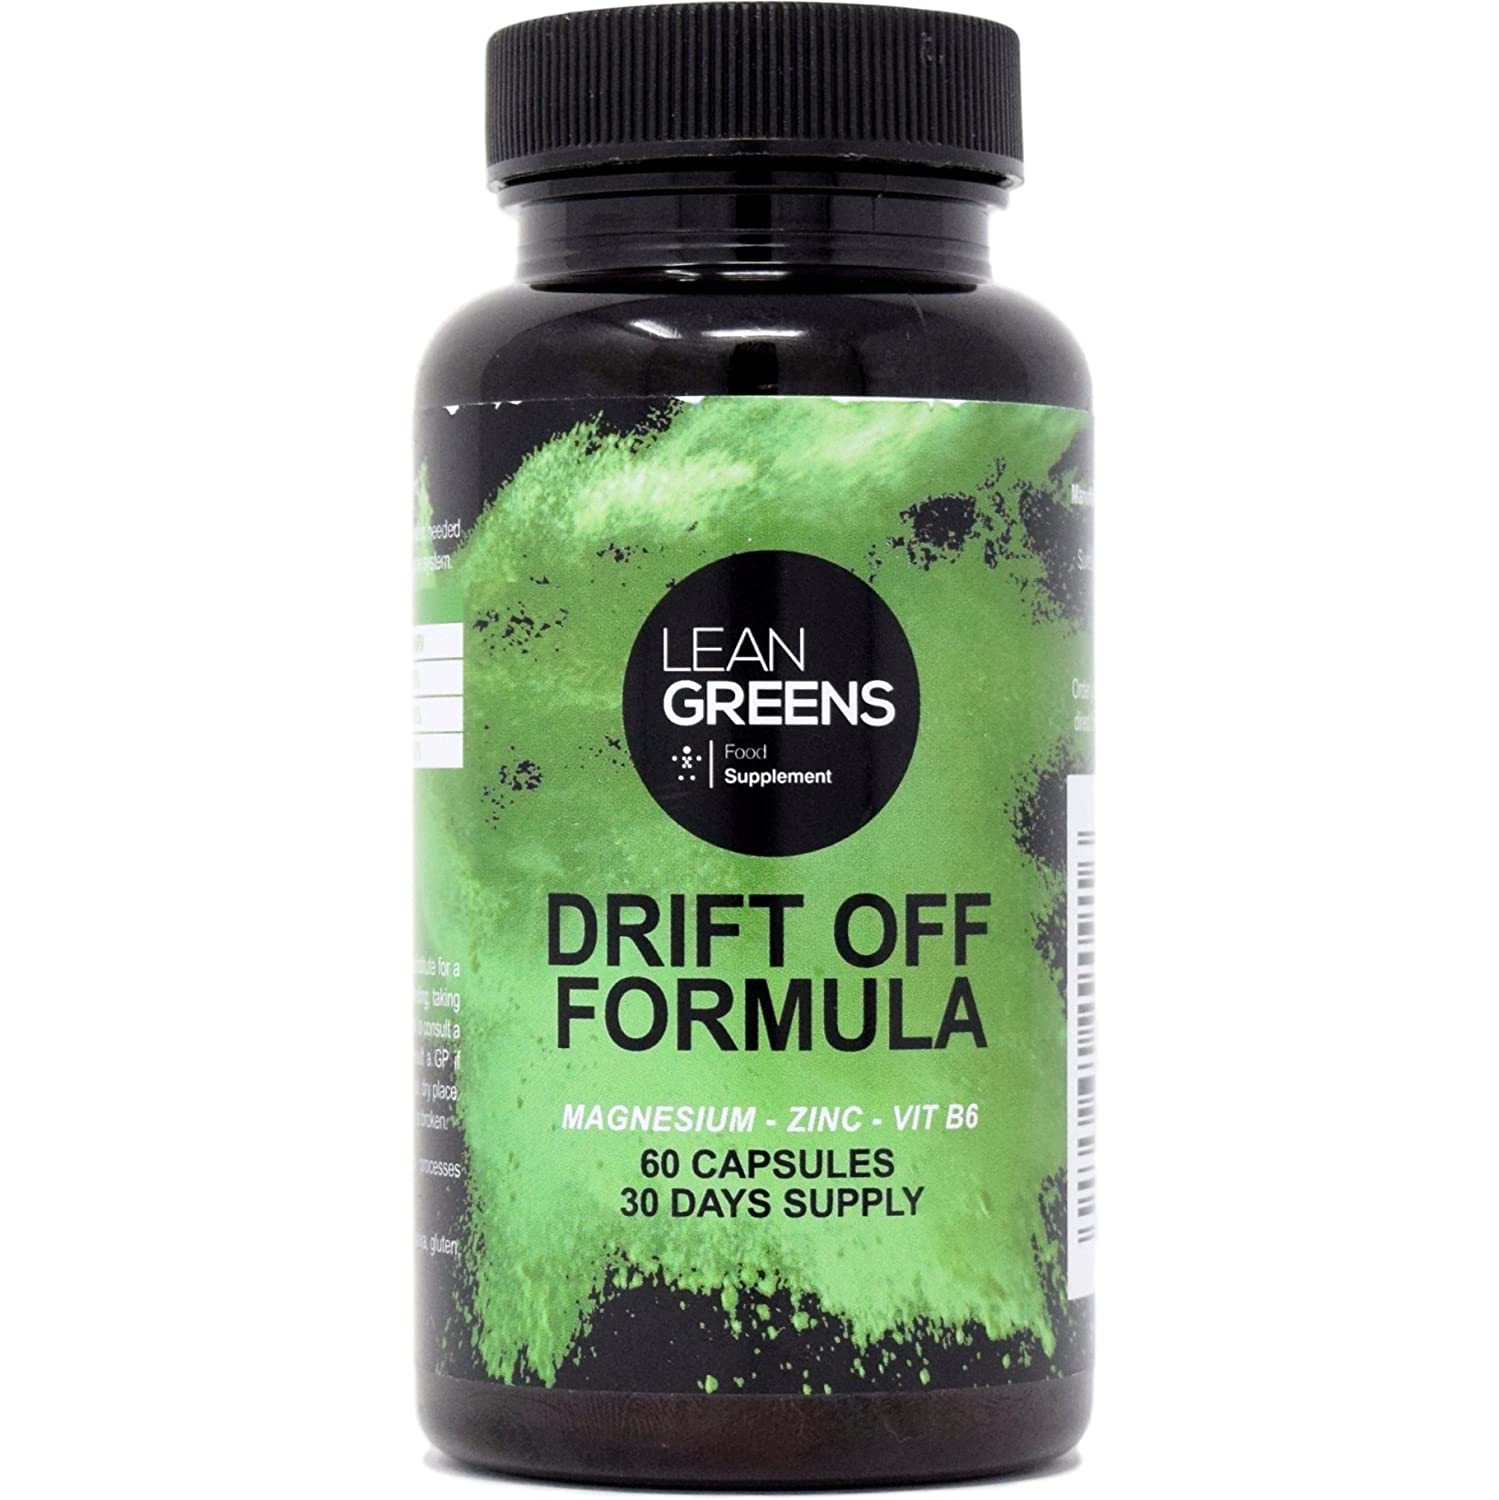 Magnesium Citrate Zinc Vitamin B6 Drift Off Formula By Greeb Vit Lean Greens Stop Staring At The Ceiling Night Health Personal Care